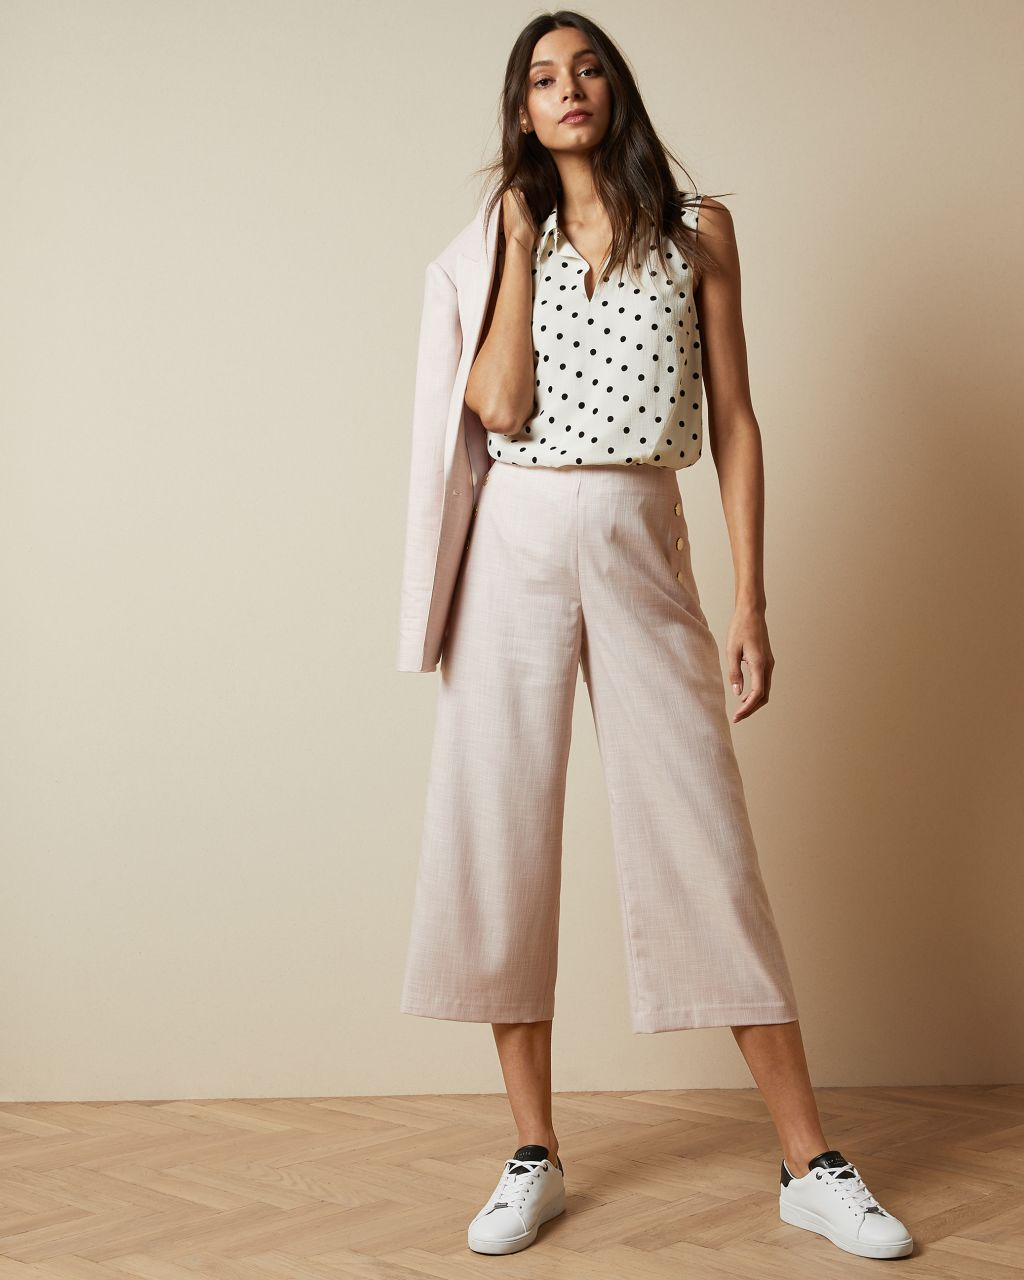 TED BAKER Culottes Mit Knopfdetail | TED BAKER SALE